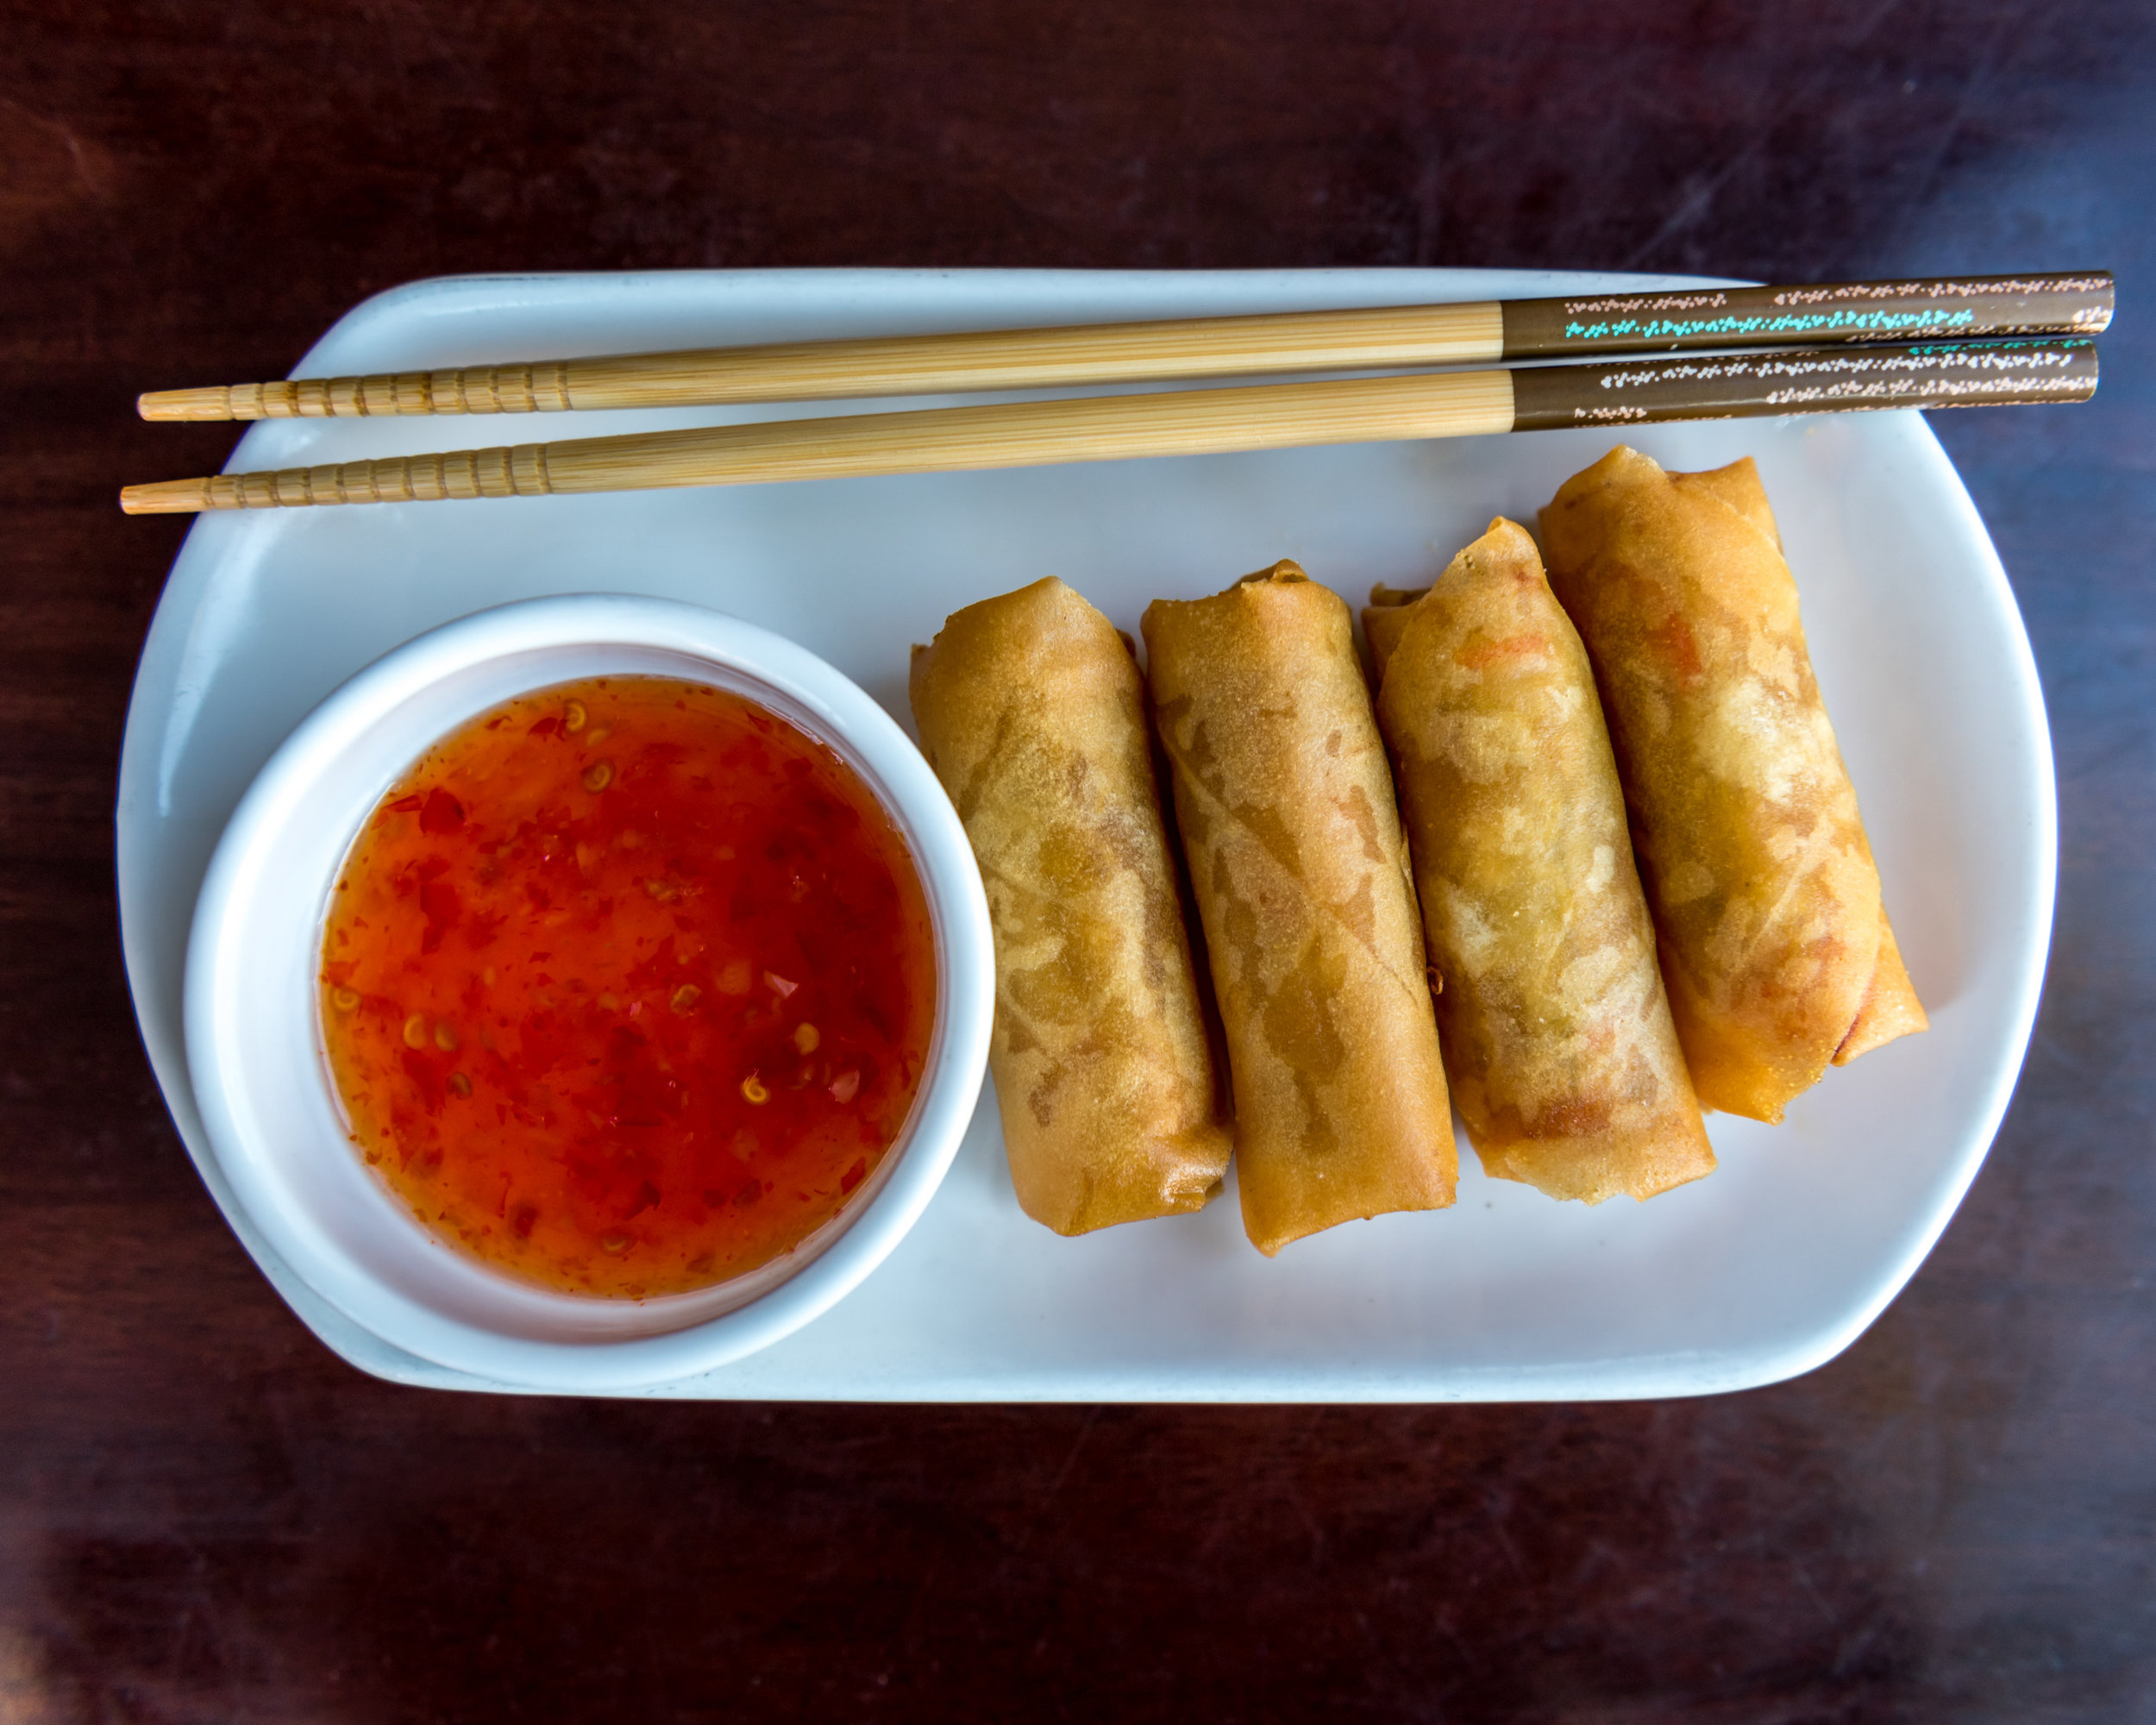 Basil_Vegetable Spring Roll_2880x2304.jpg